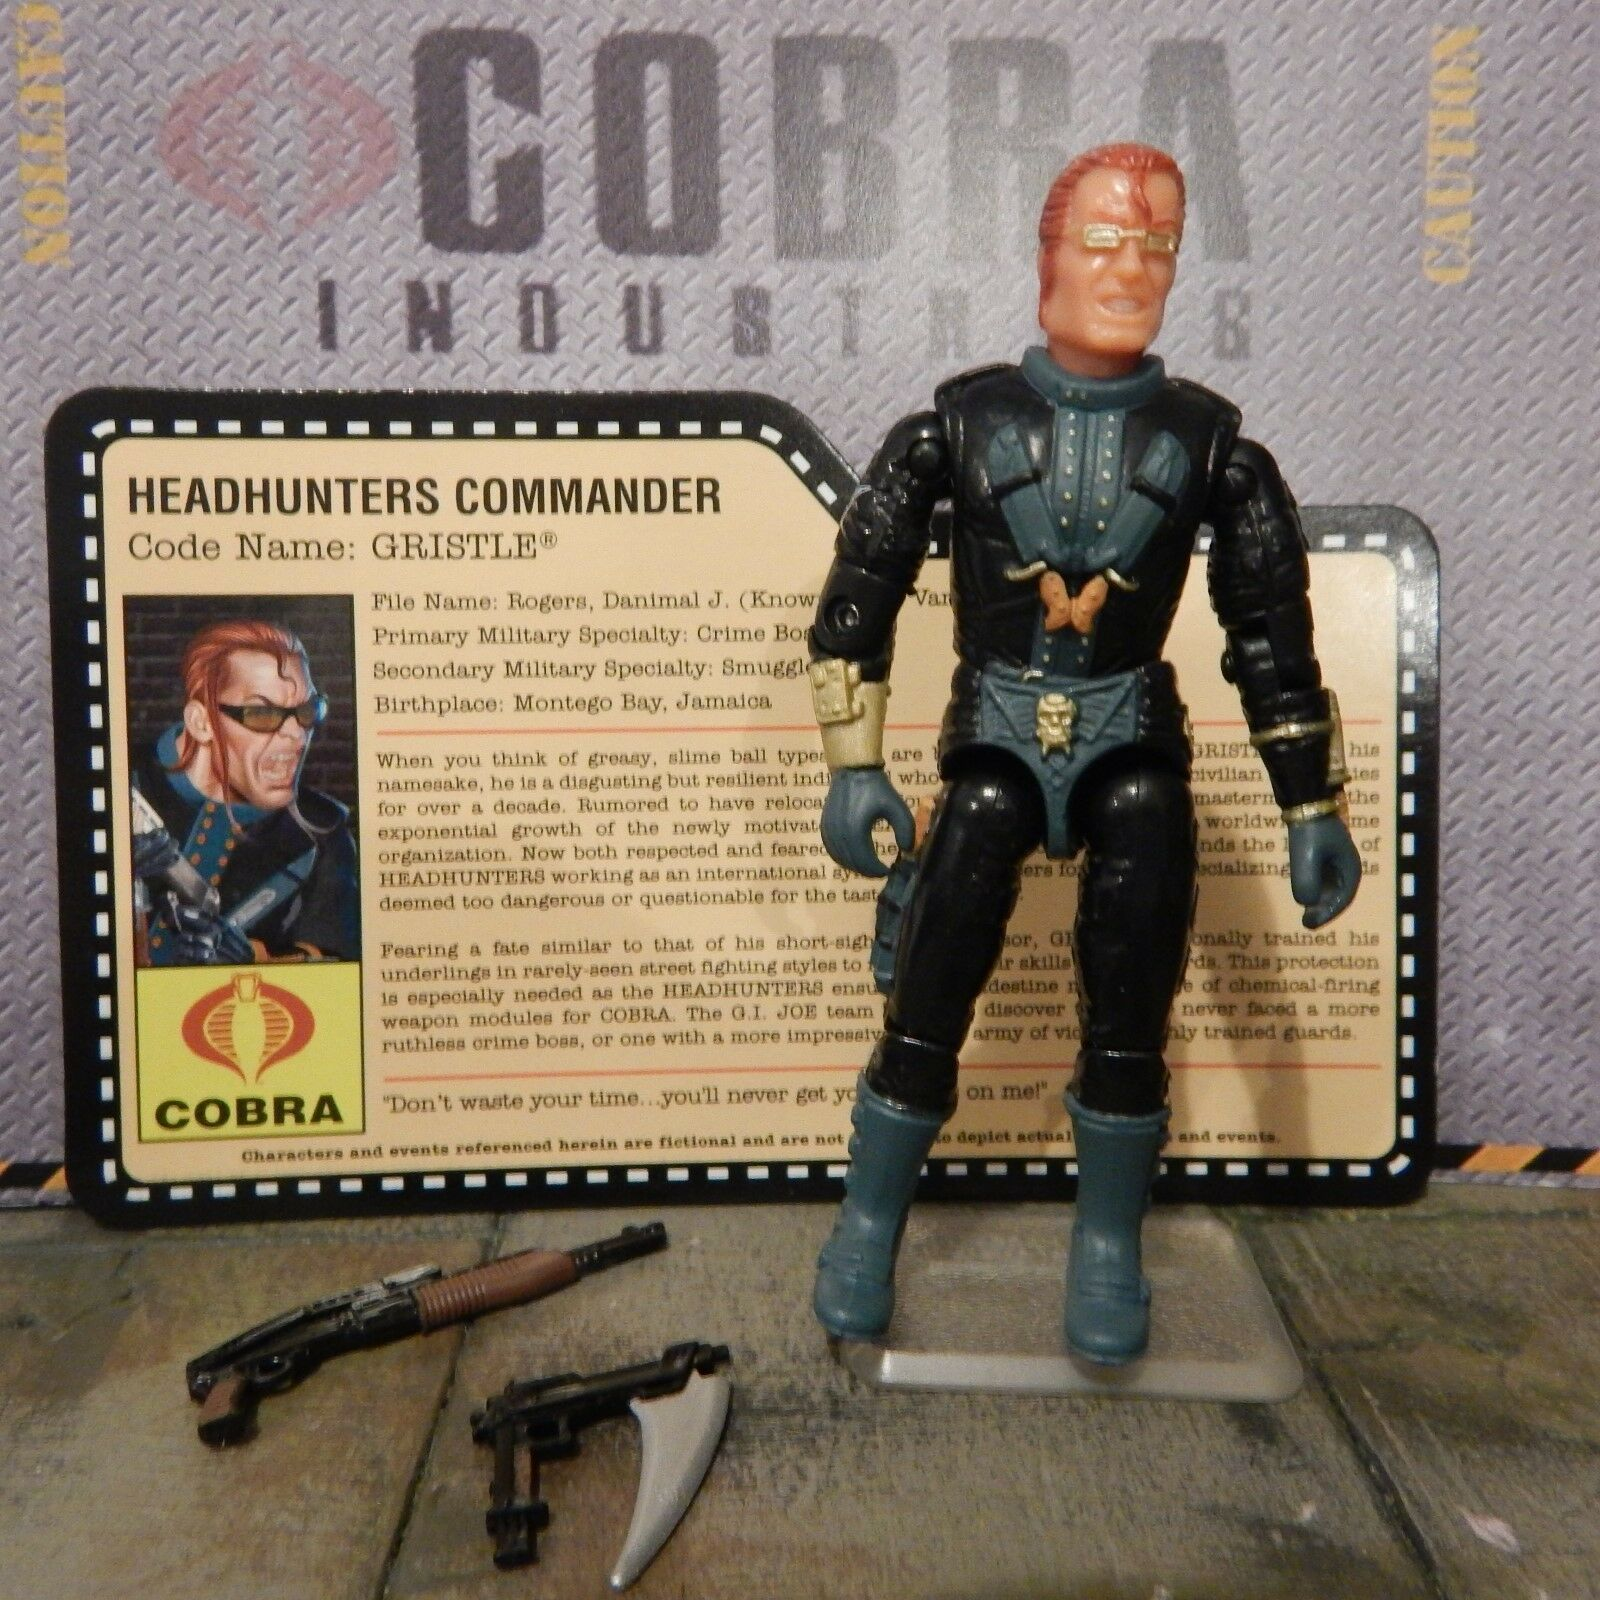 GI JOE  2008 GRISTLE HEADHUNTER COMMANDER  100% & file card  CON JOECON